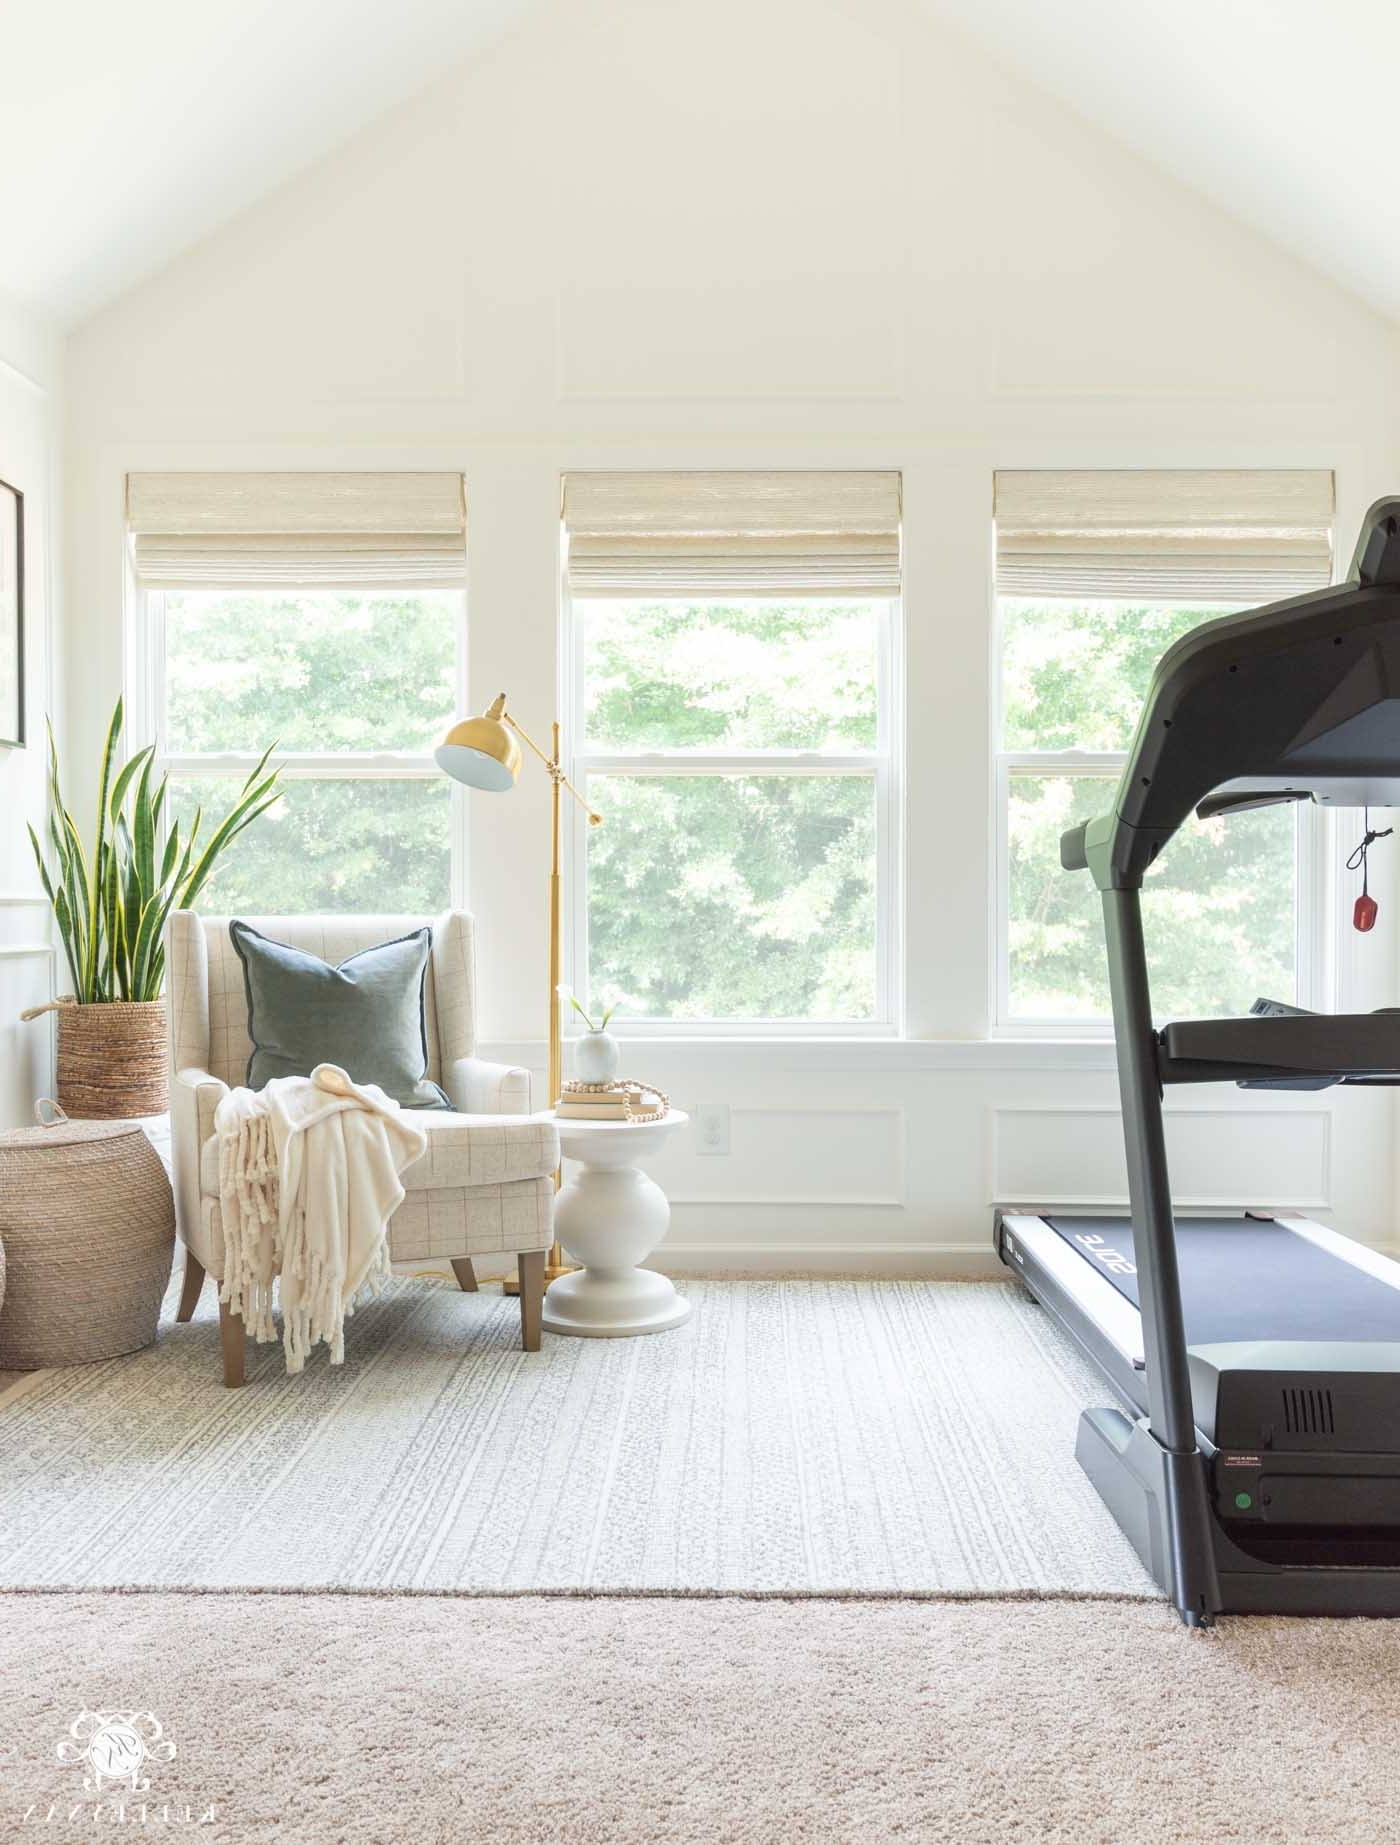 Coordinating The Master Bedroom Sitting Area To The Bedroom Decorate Living Room With Treadmill